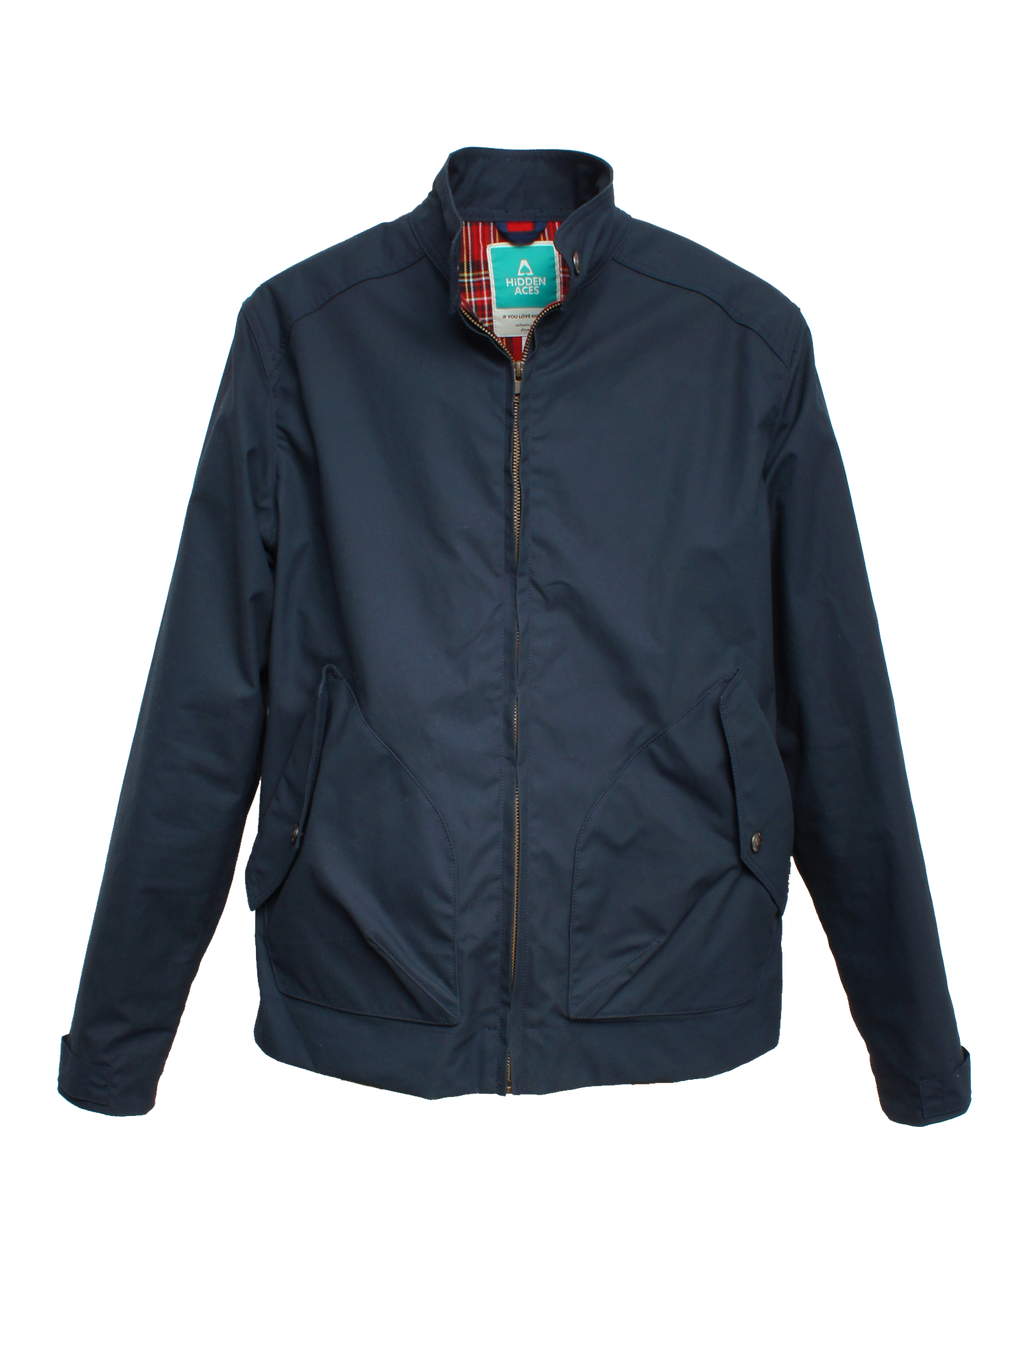 K6004 CASTOR Mens Waxed Cotton Blouson